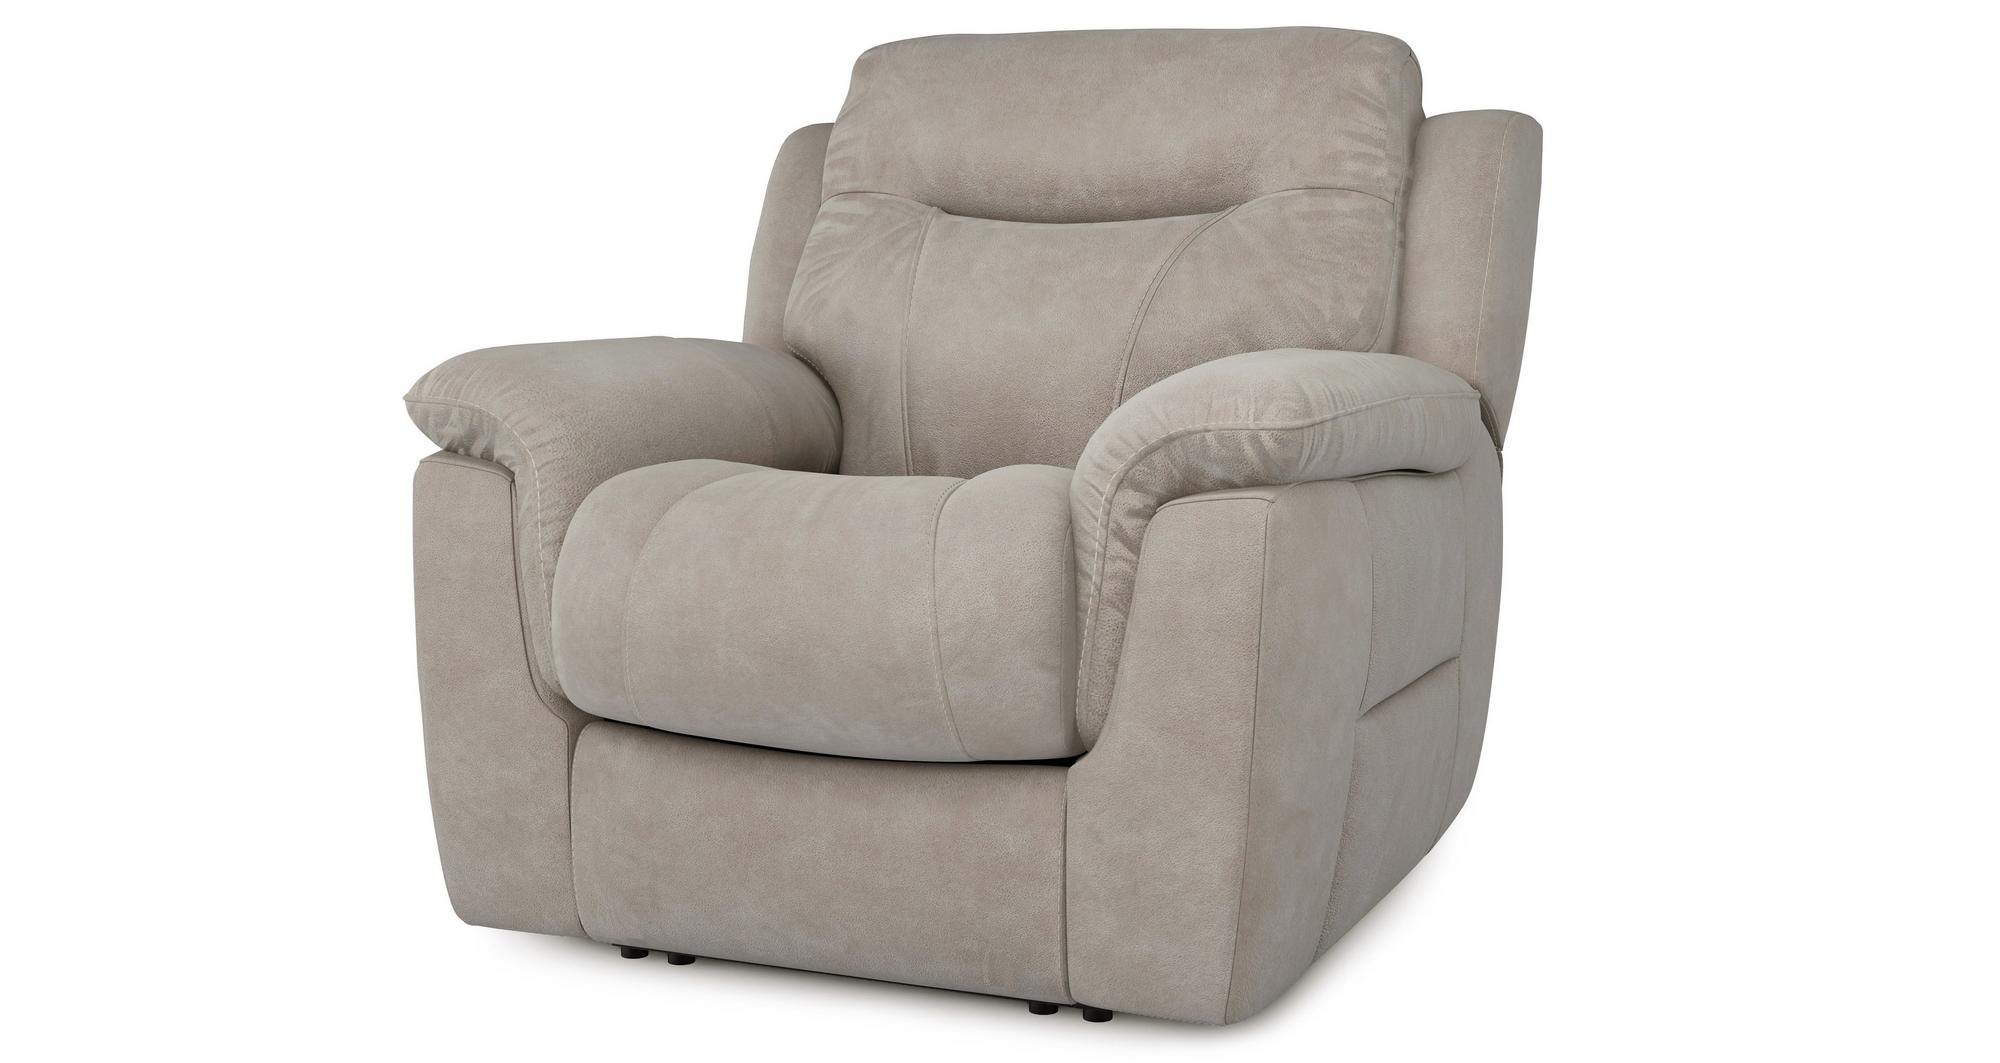 Leather recliner chairs uk - Dfs furniture head office ...